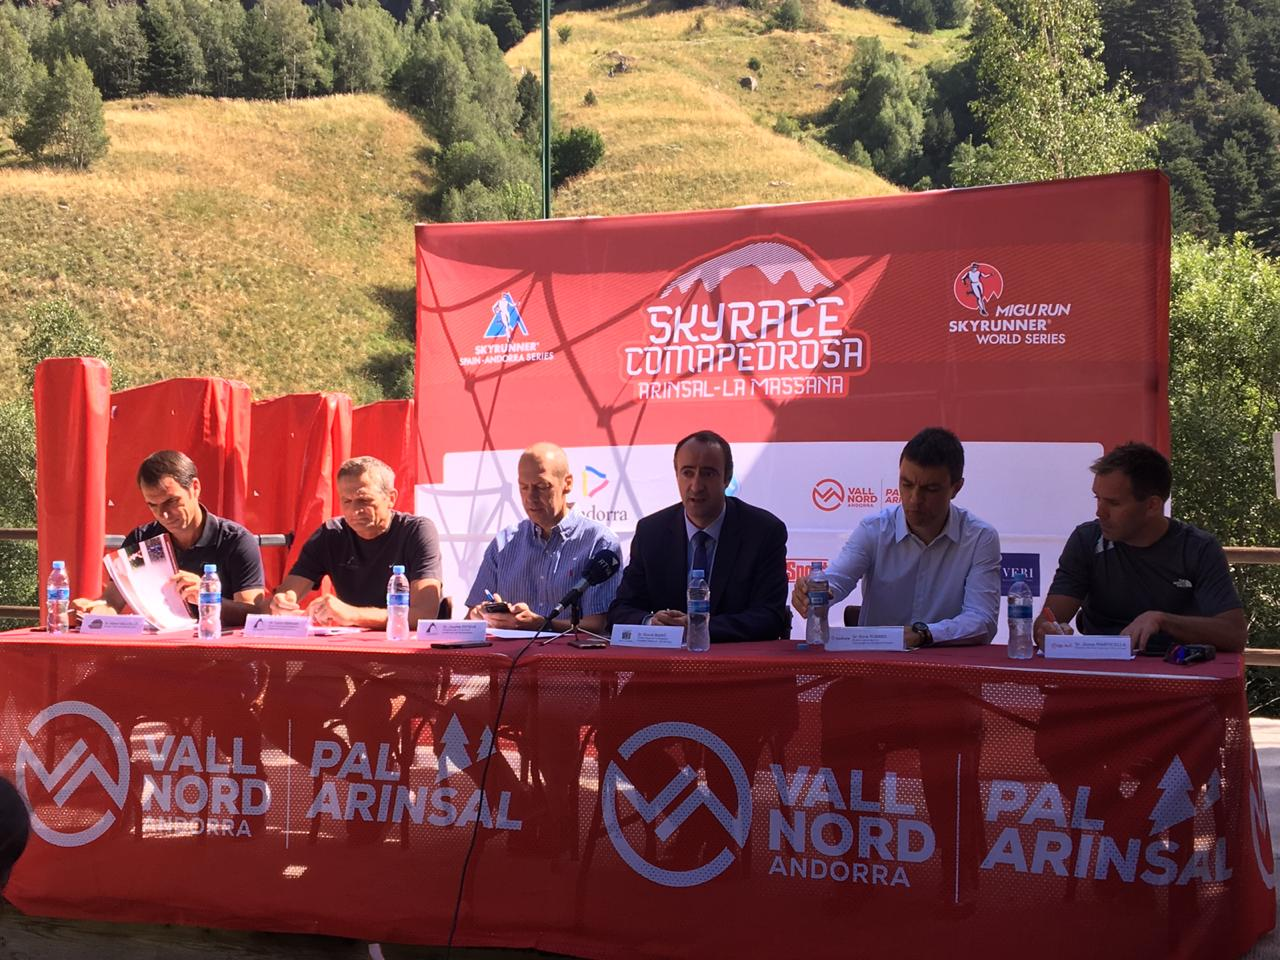 On the coming 28 July, La Massana will host the Skyrace Comapedrosa, which is part of the Migu Run Skyrunner� World Series